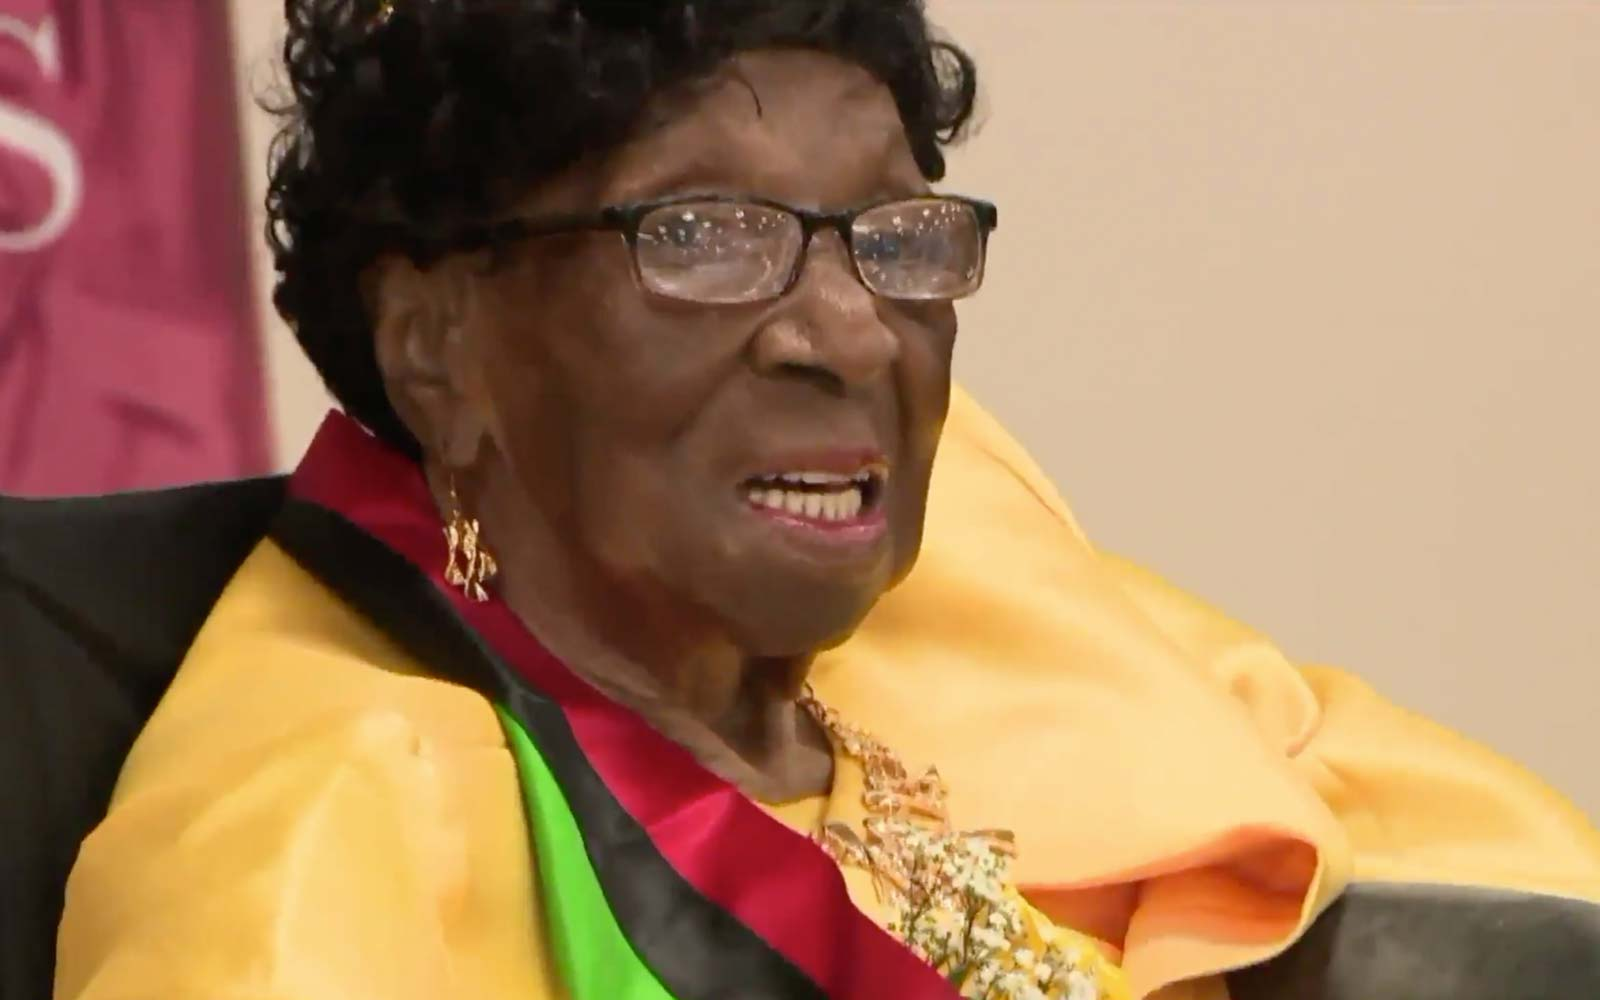 This Woman Is the Oldest Person in the U.S. and She Just Celebrated Her 114th Birthday